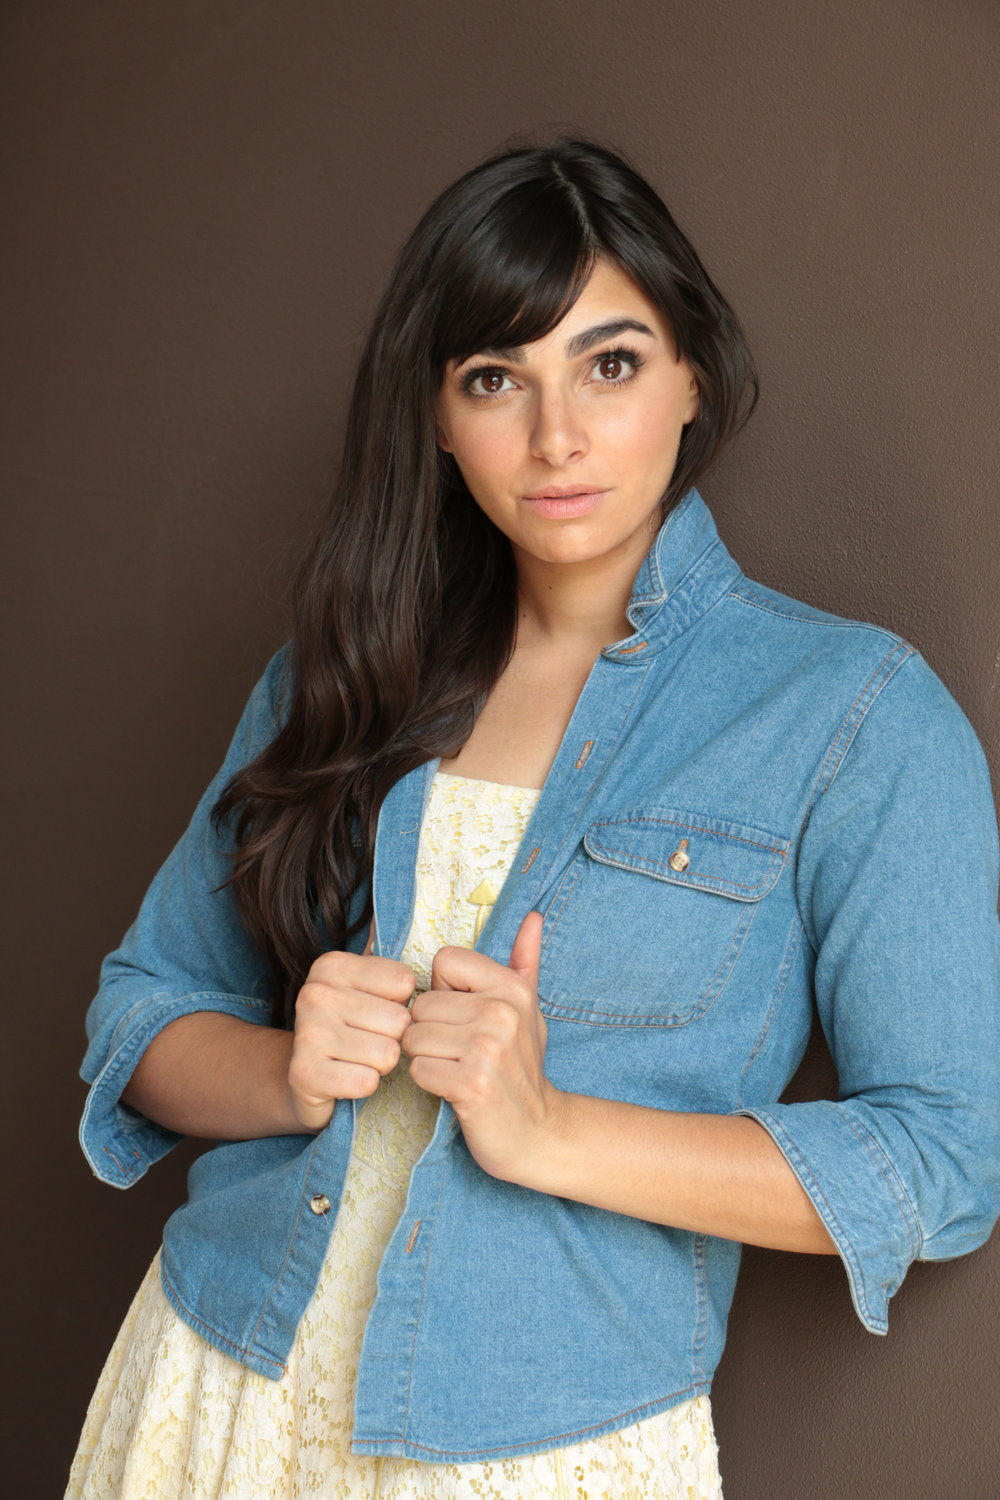 Female model Headshot in denim shirt